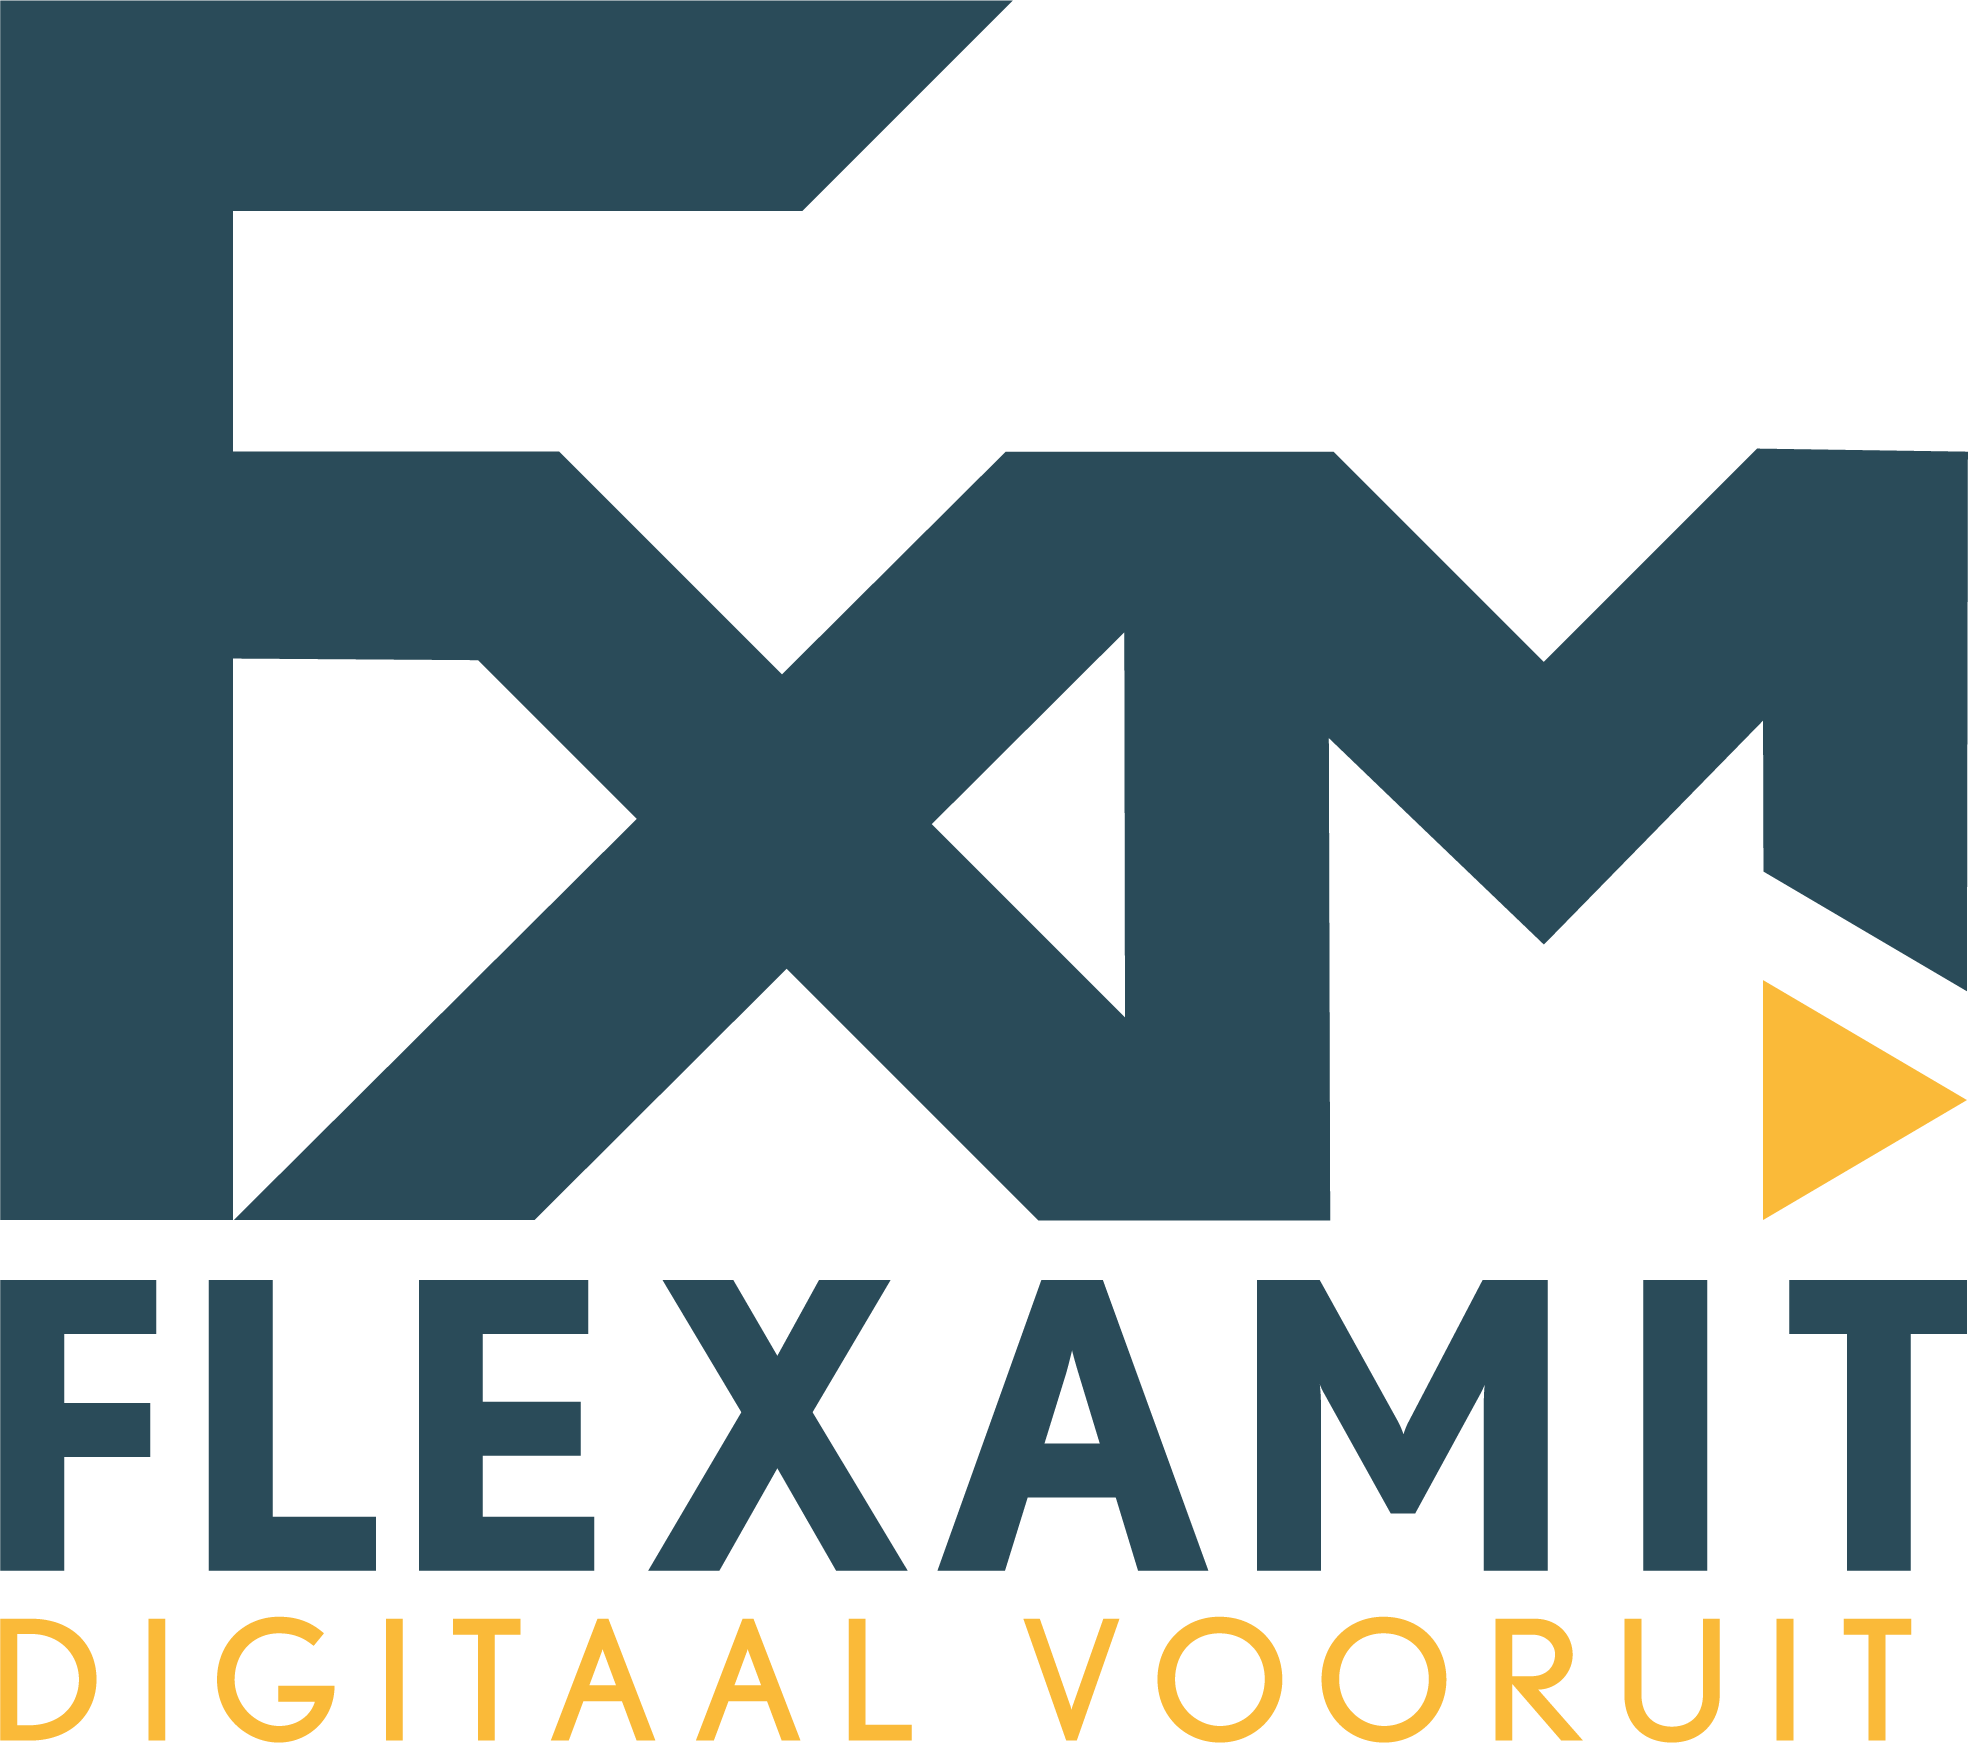 FLEXAMIT bv